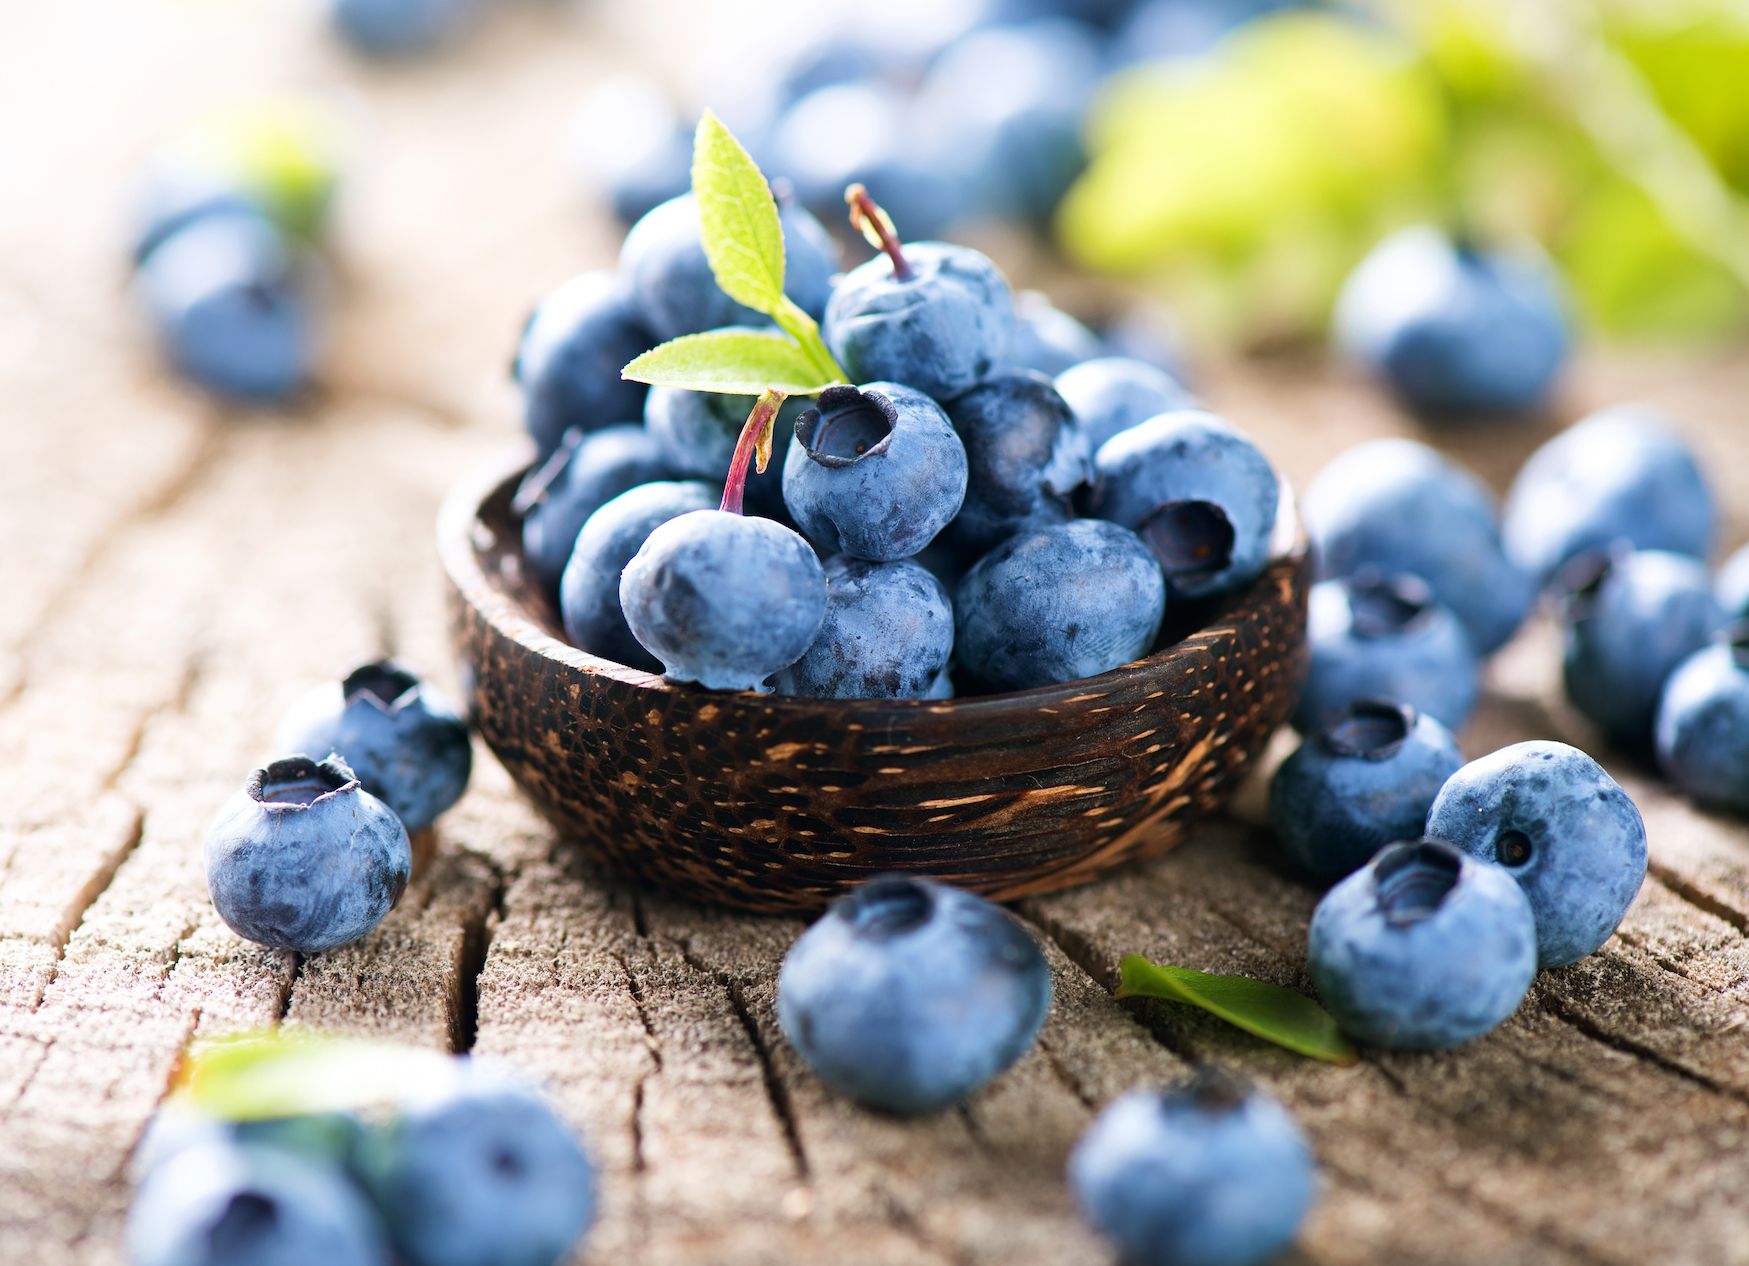 5 Reasons Why Blueberries Are so Healthy